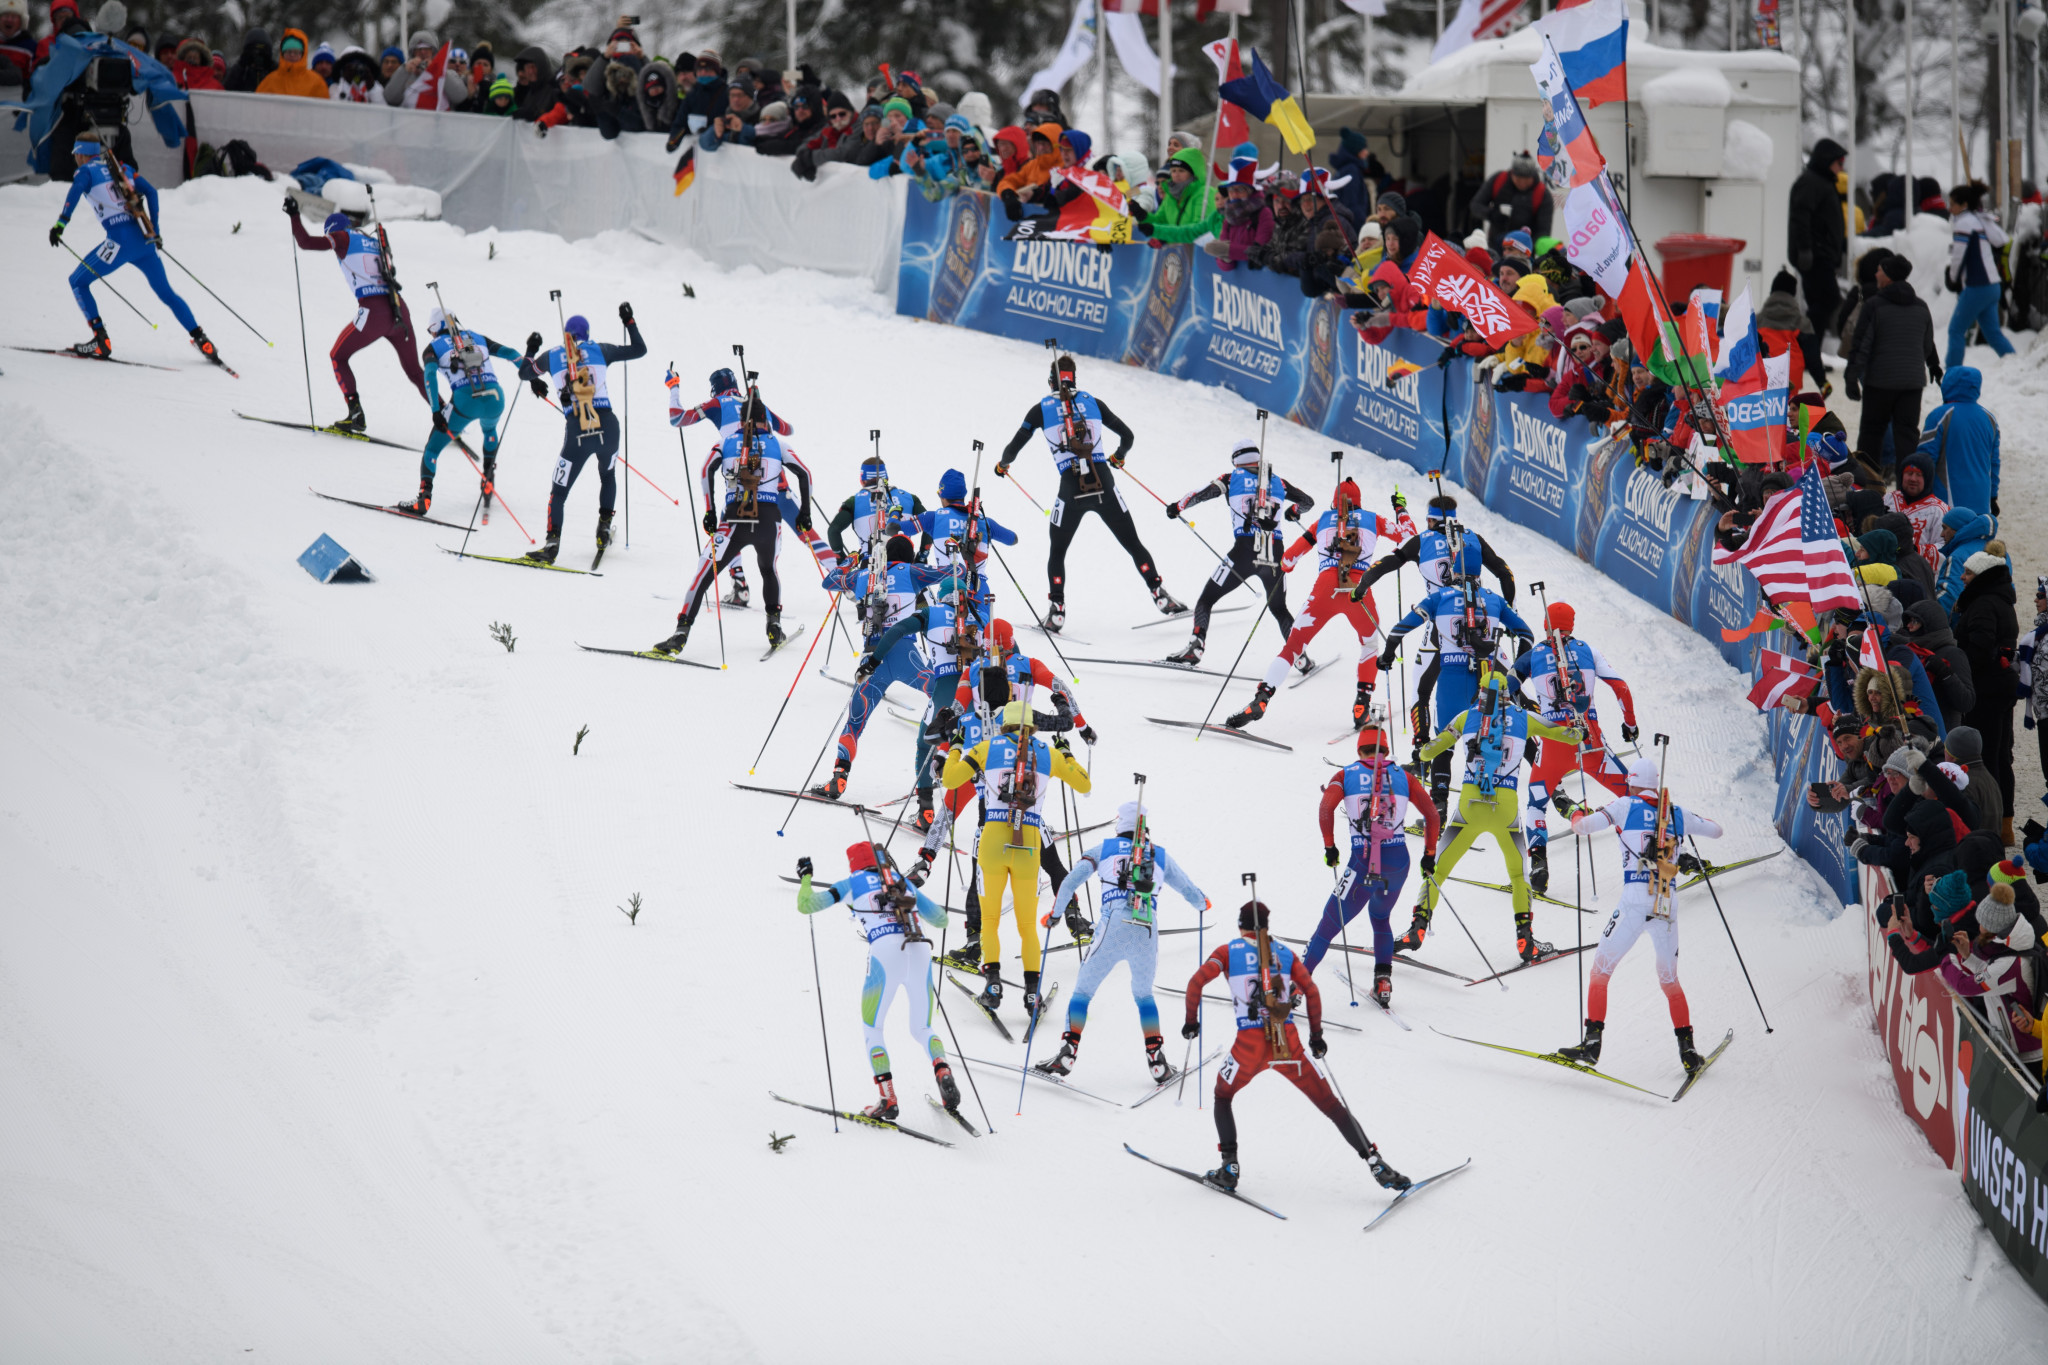 IBU battling to defend reputation as sponsors stall for time